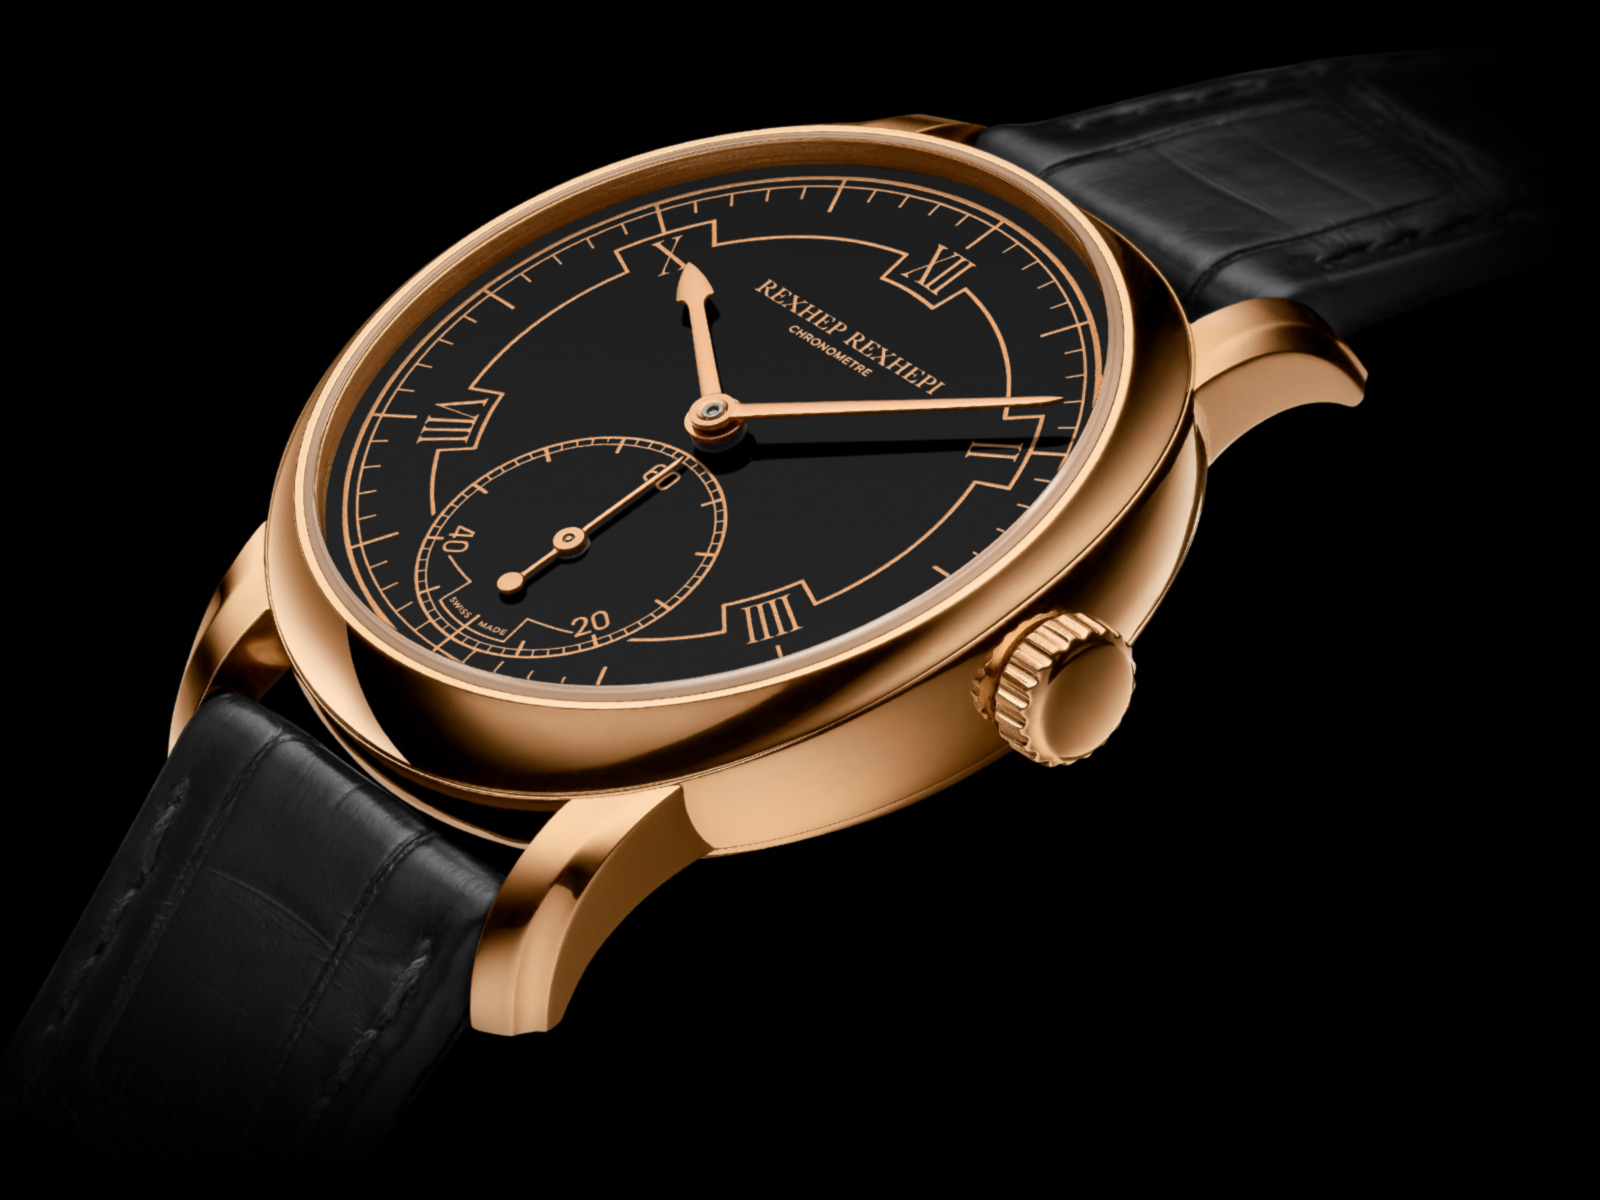 Centre stage  The beautiful Akrivia Chronomètre Contemporain launched at the Baselworld watch show 2018 has put talented watchmaker Rexhep Rexhepi in the spotlight of the most discerning watch collectors.